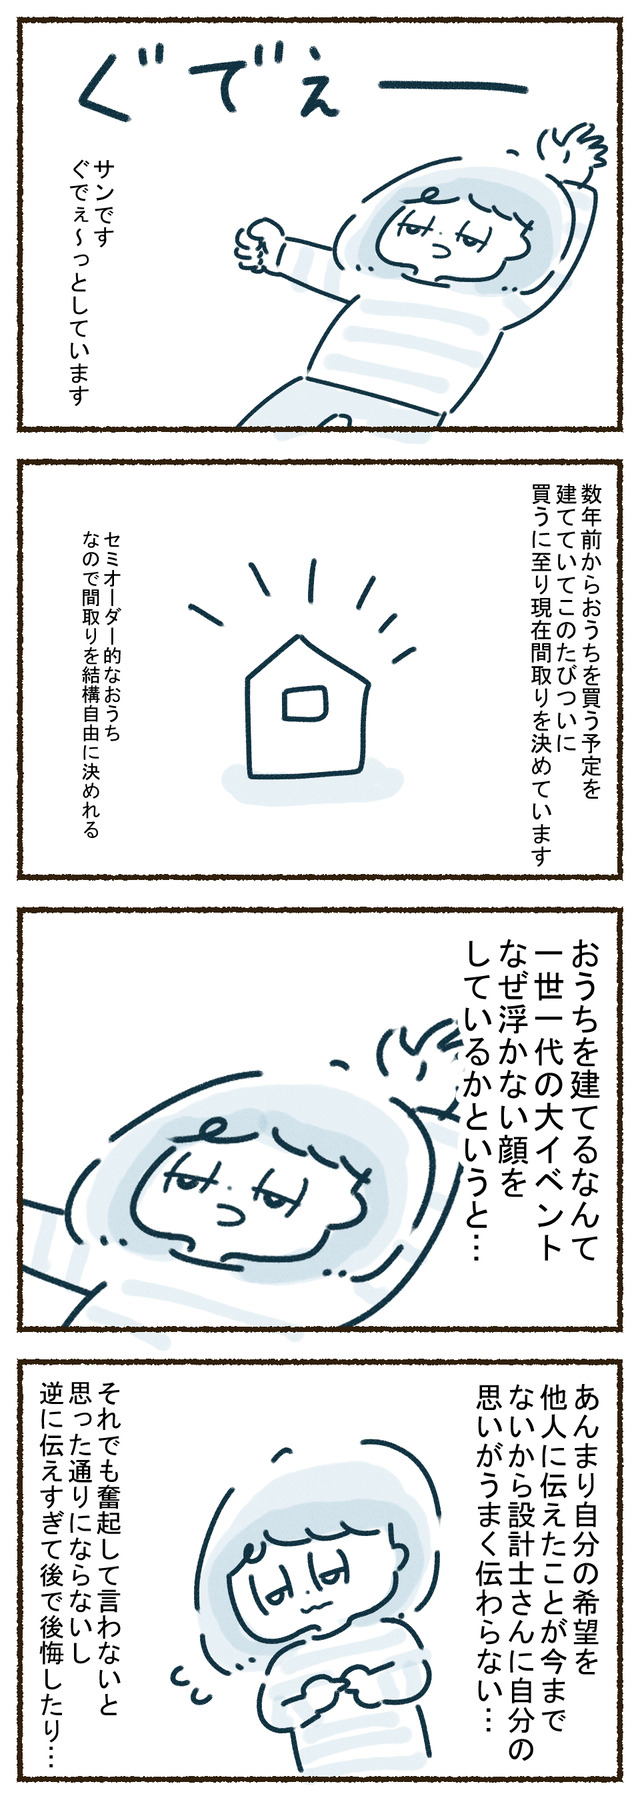 ouchi01